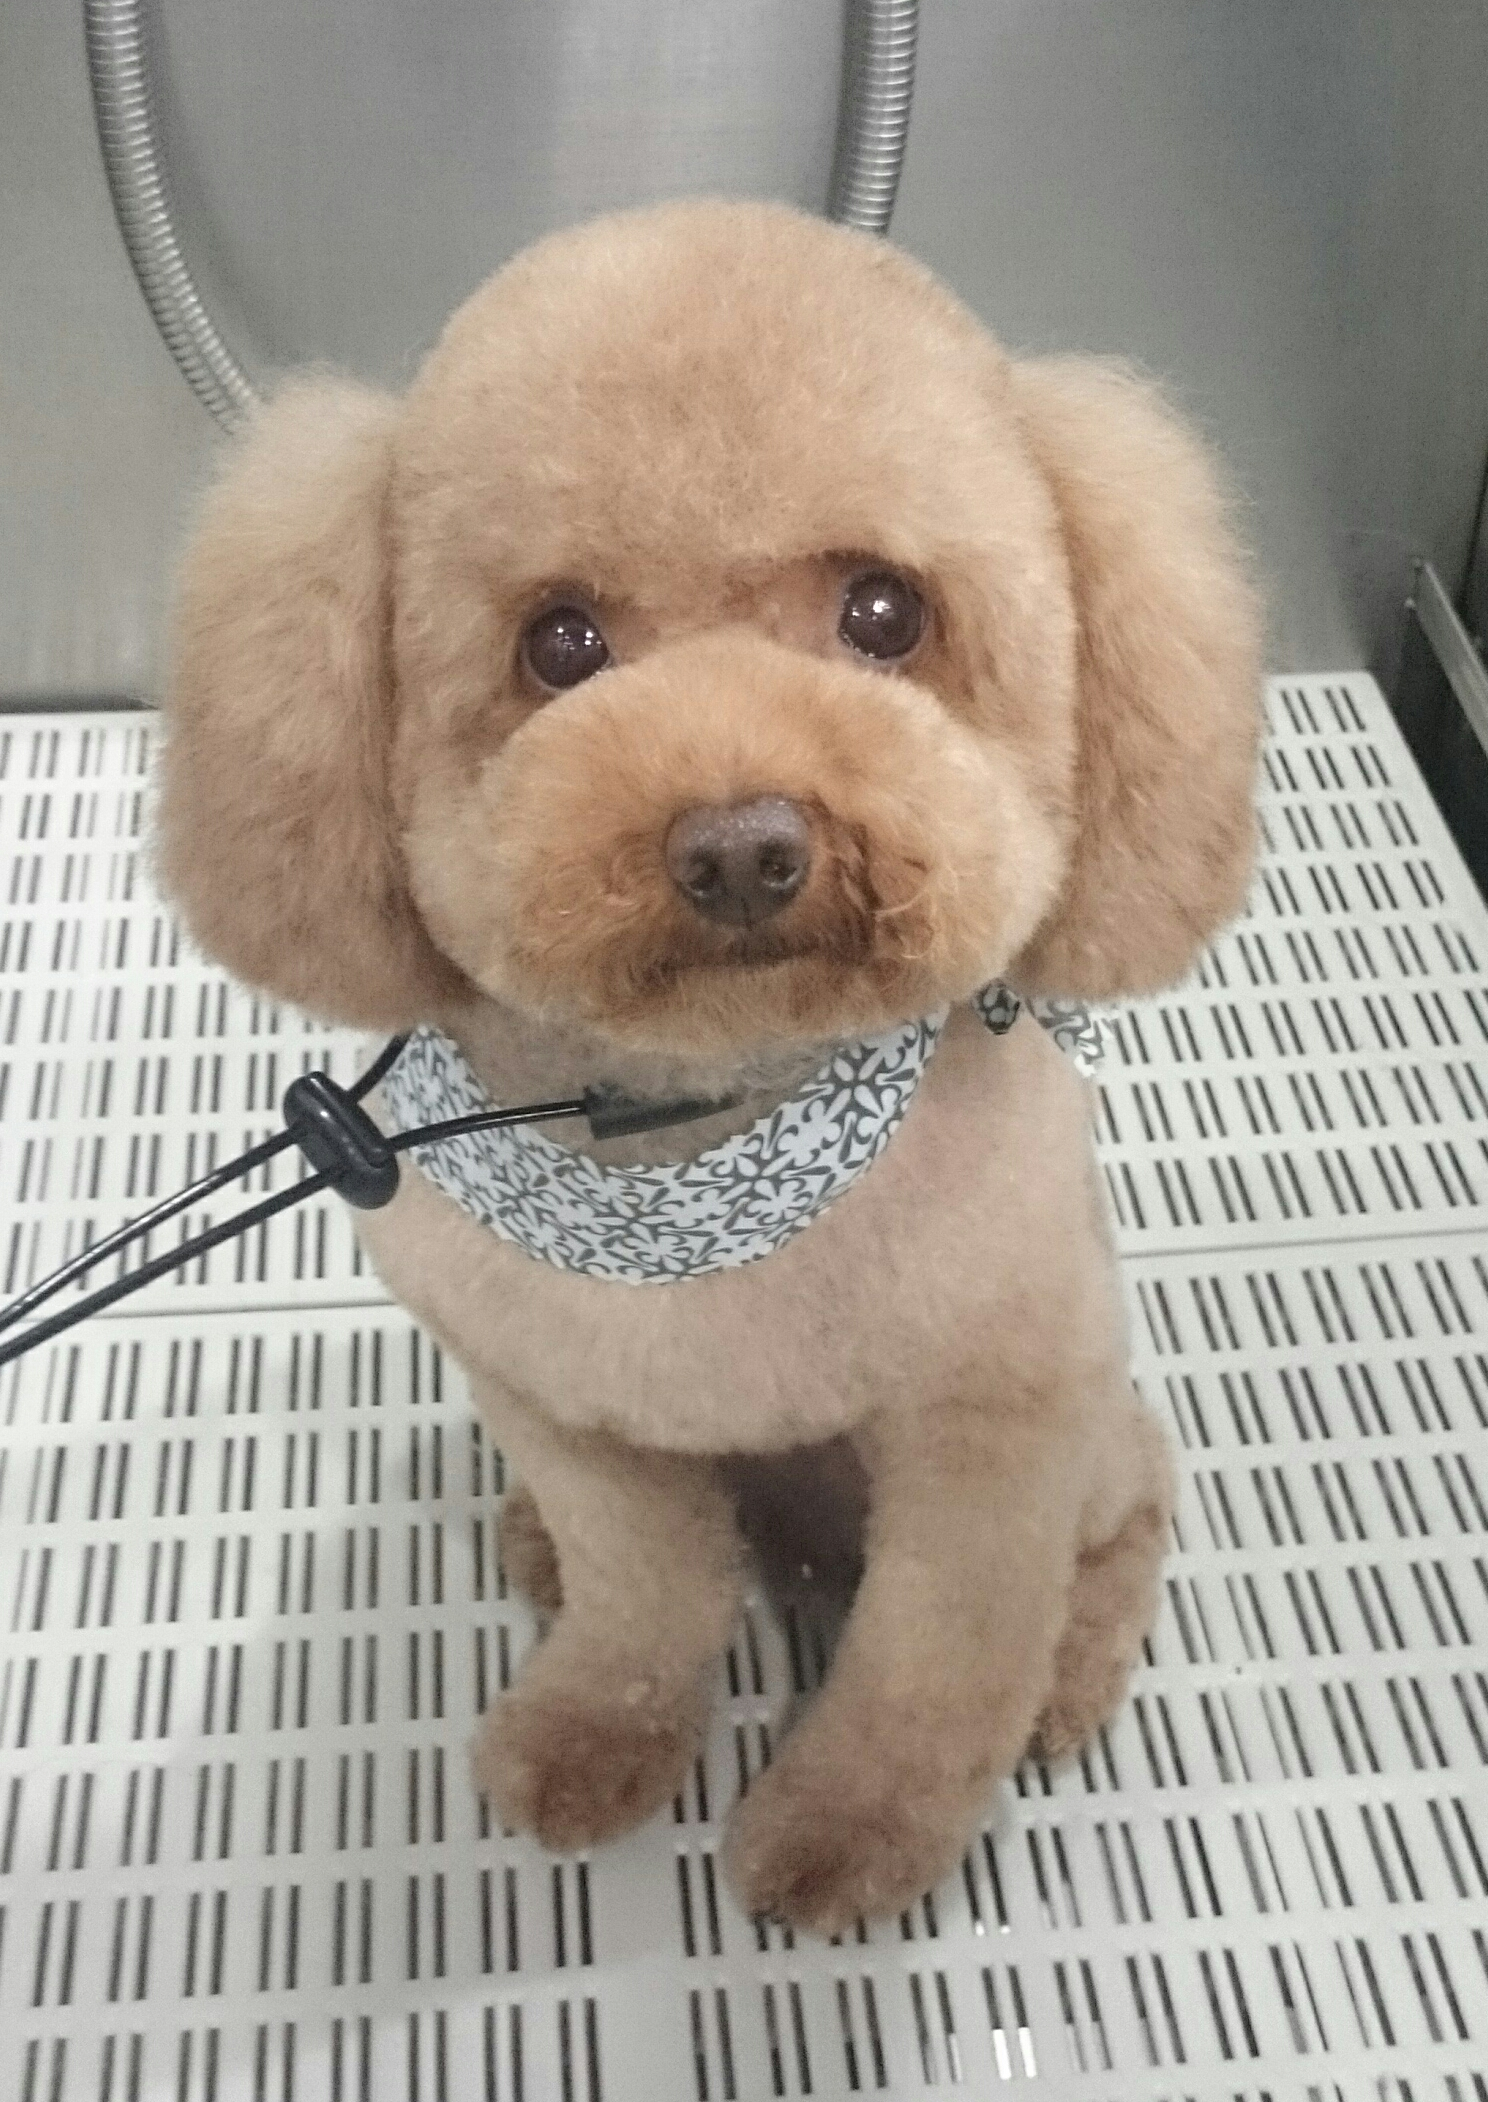 Shaved poodle pictures